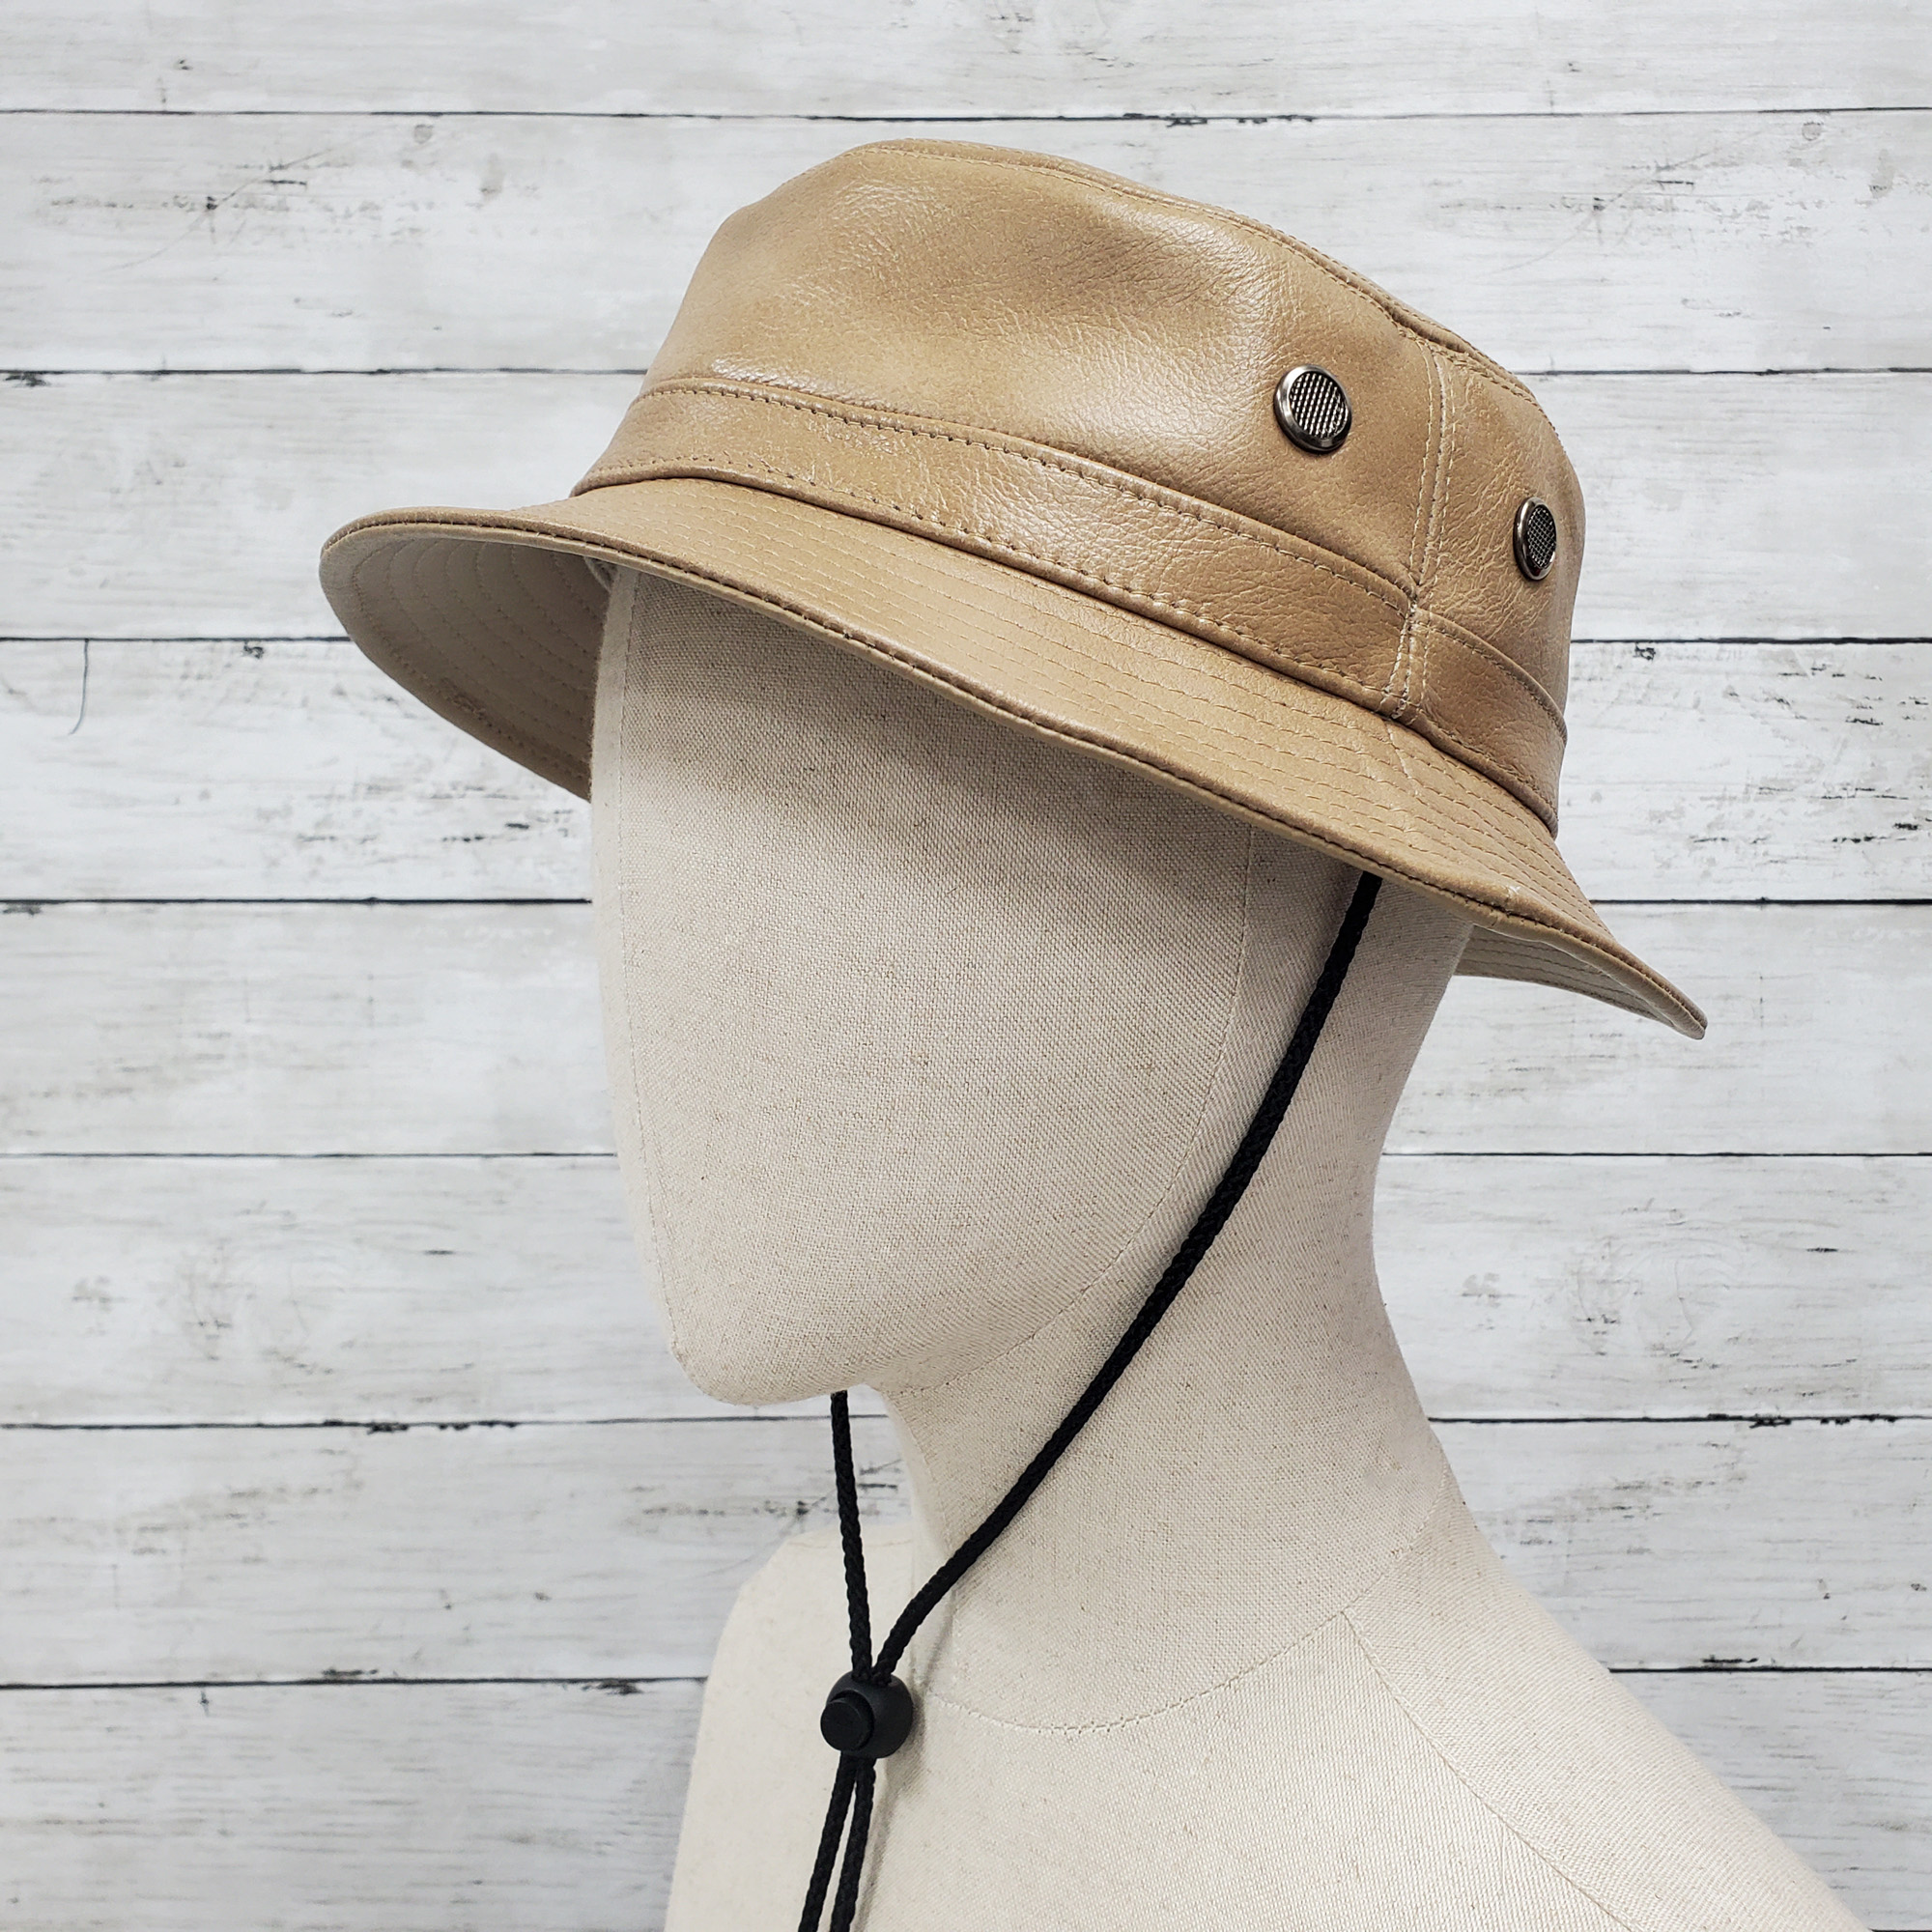 Tan/Nude Siena Leather Bucket Hat